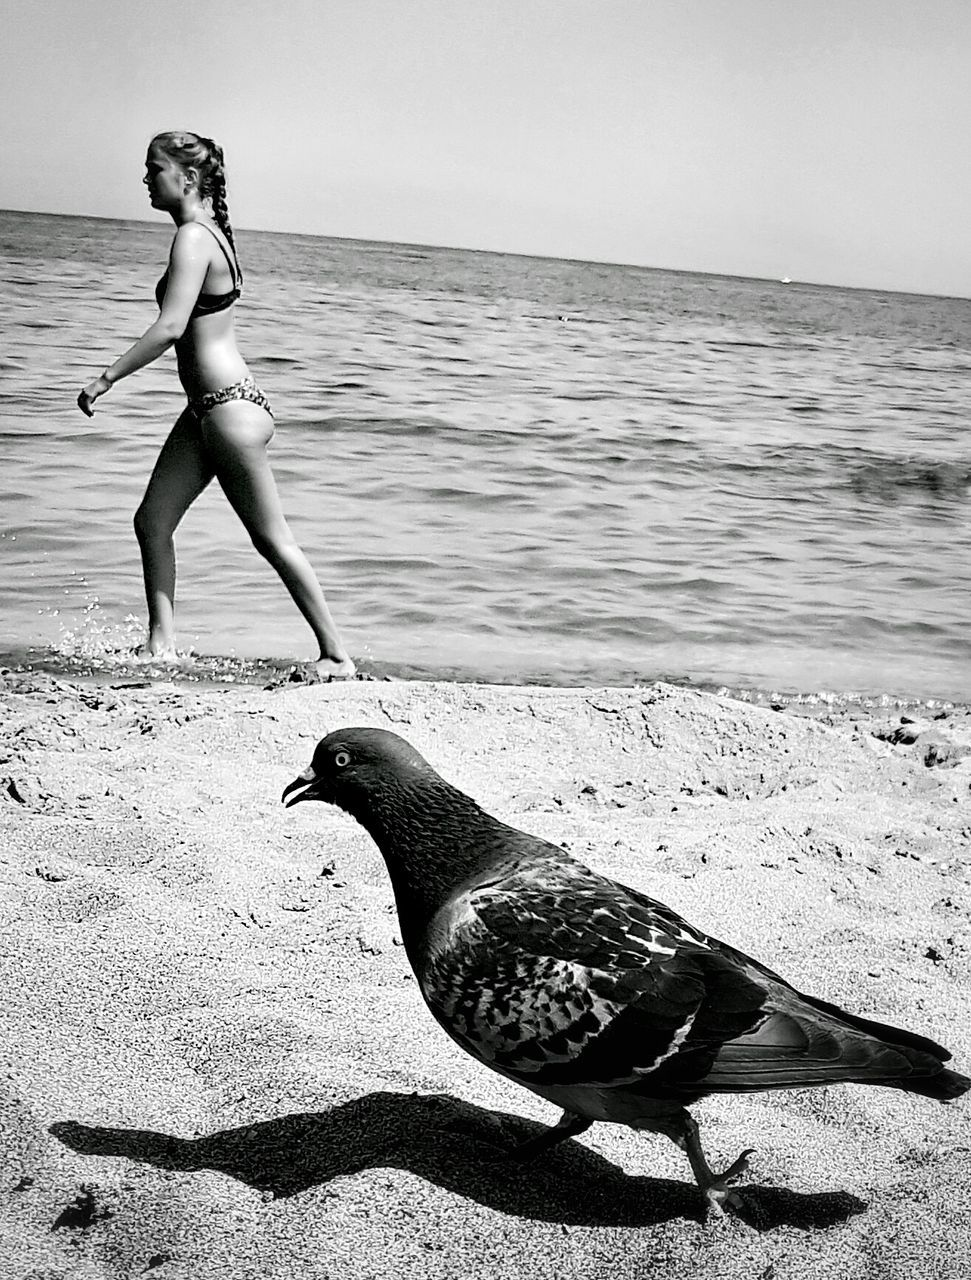 sea, water, beach, full length, bikini, sand, one person, outdoors, animal themes, young adult, bird, nature, animals in the wild, beauty in nature, real people, day, young women, people